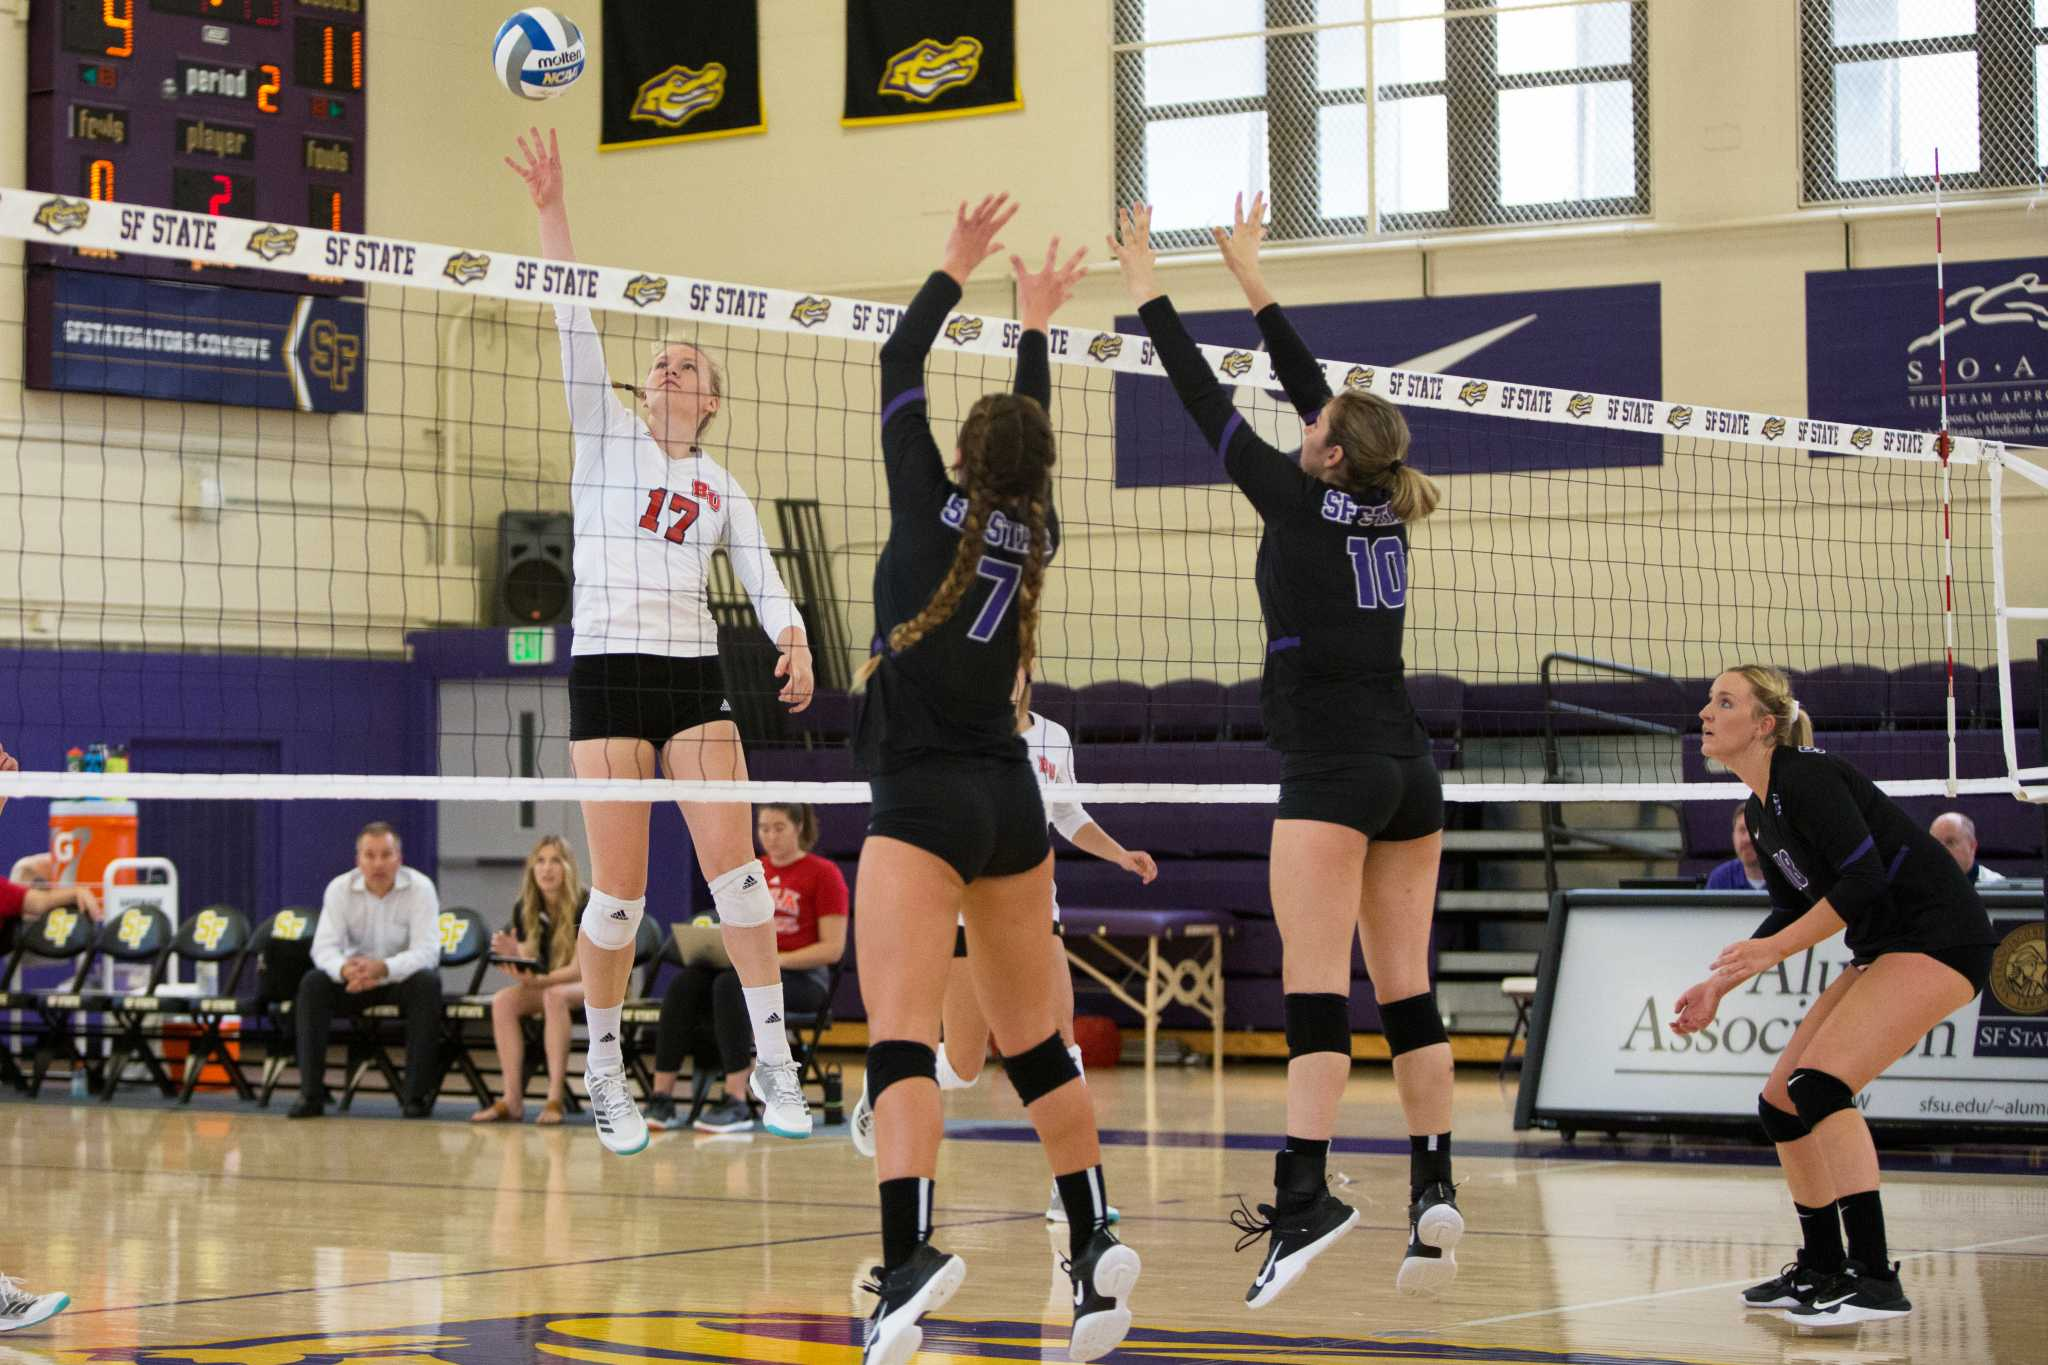 Biola University's Bekah Roth (17) spikes the ball during a game against SF State in the gym on Thursday, September 7, 2017. Biola defeated SF State 3-1. (Travis Wesley/Golden Gate Xpress)